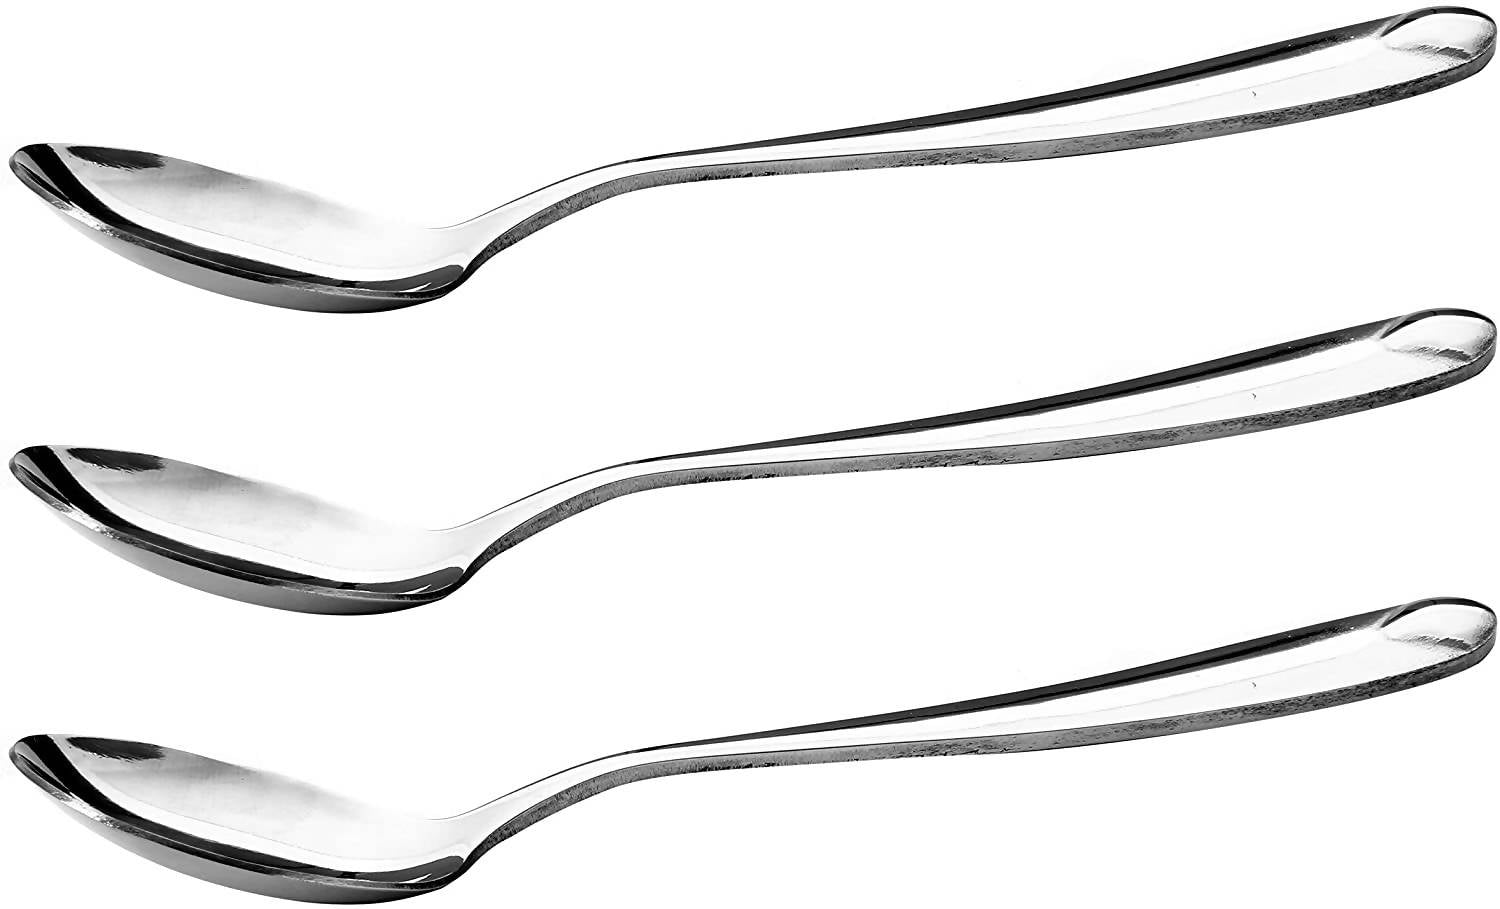 Royalford RF4190 SS Stainless Steel Soup Spoons - Serving Spoon Long Handle Dinner Cutlery, Dining Utensils Ideal for Hotel, Home & Outings - 2071MALL